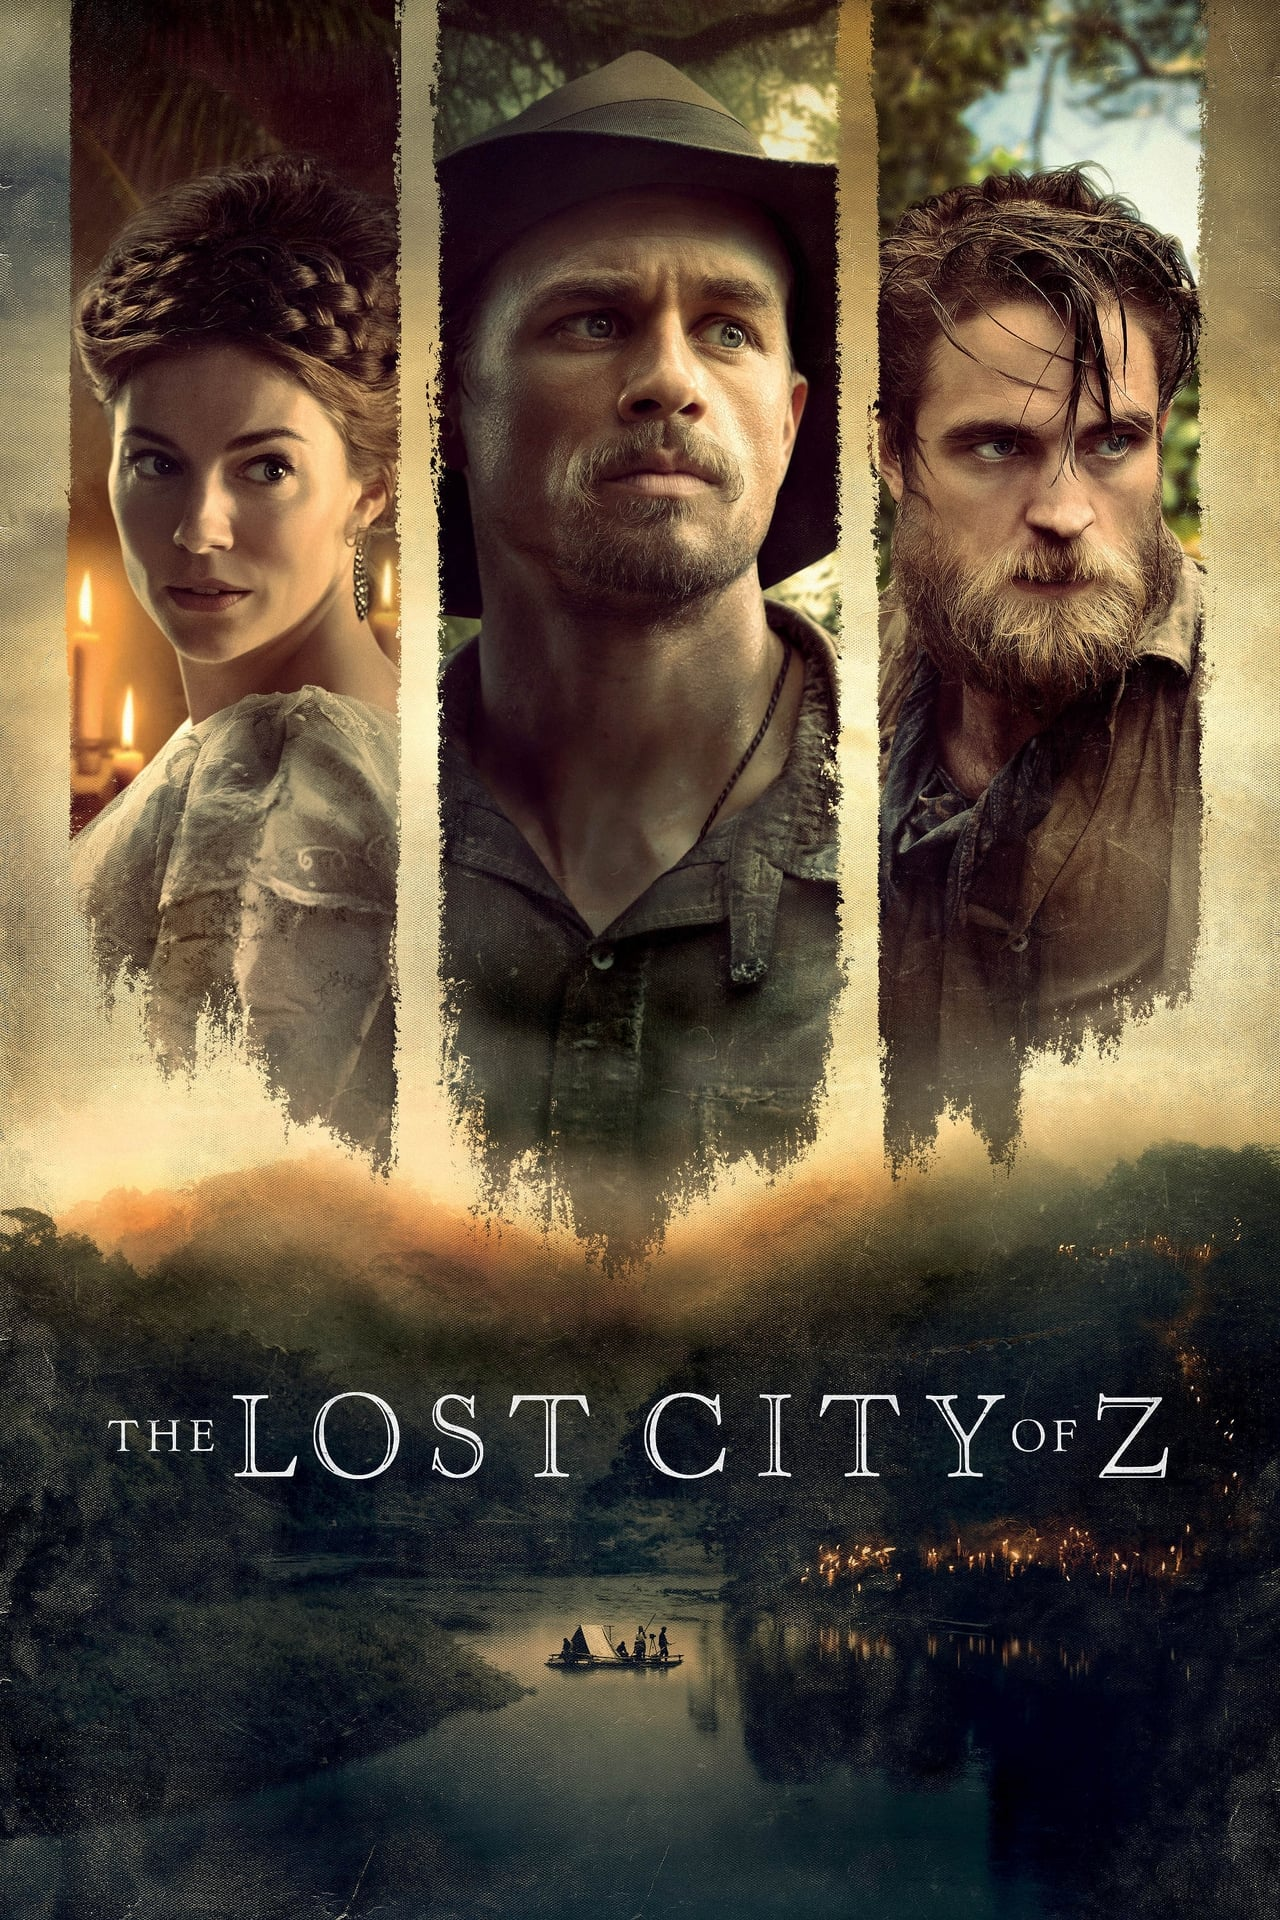 S.t.r.e.a.m.i.n.g The Lost City of Z (2017) Episodes Online